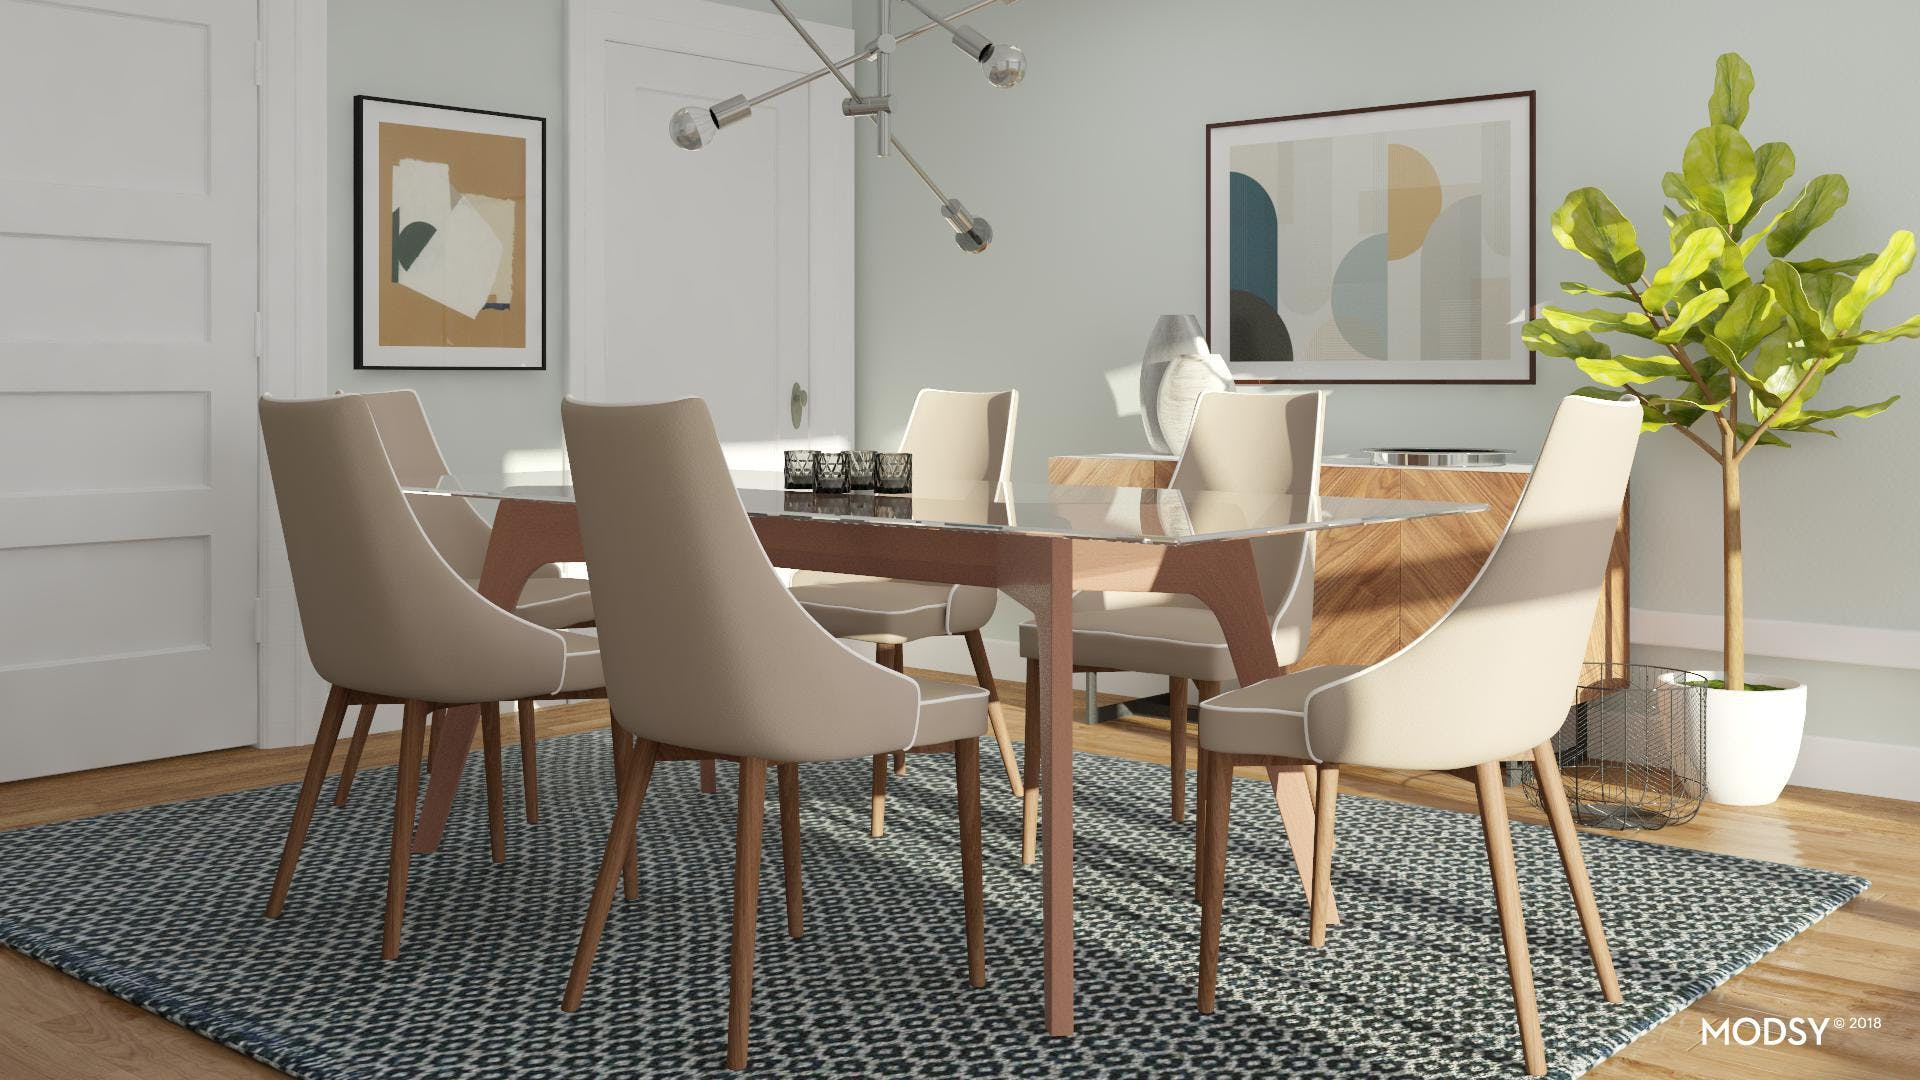 Contemporary Dining Room With Artful Edge